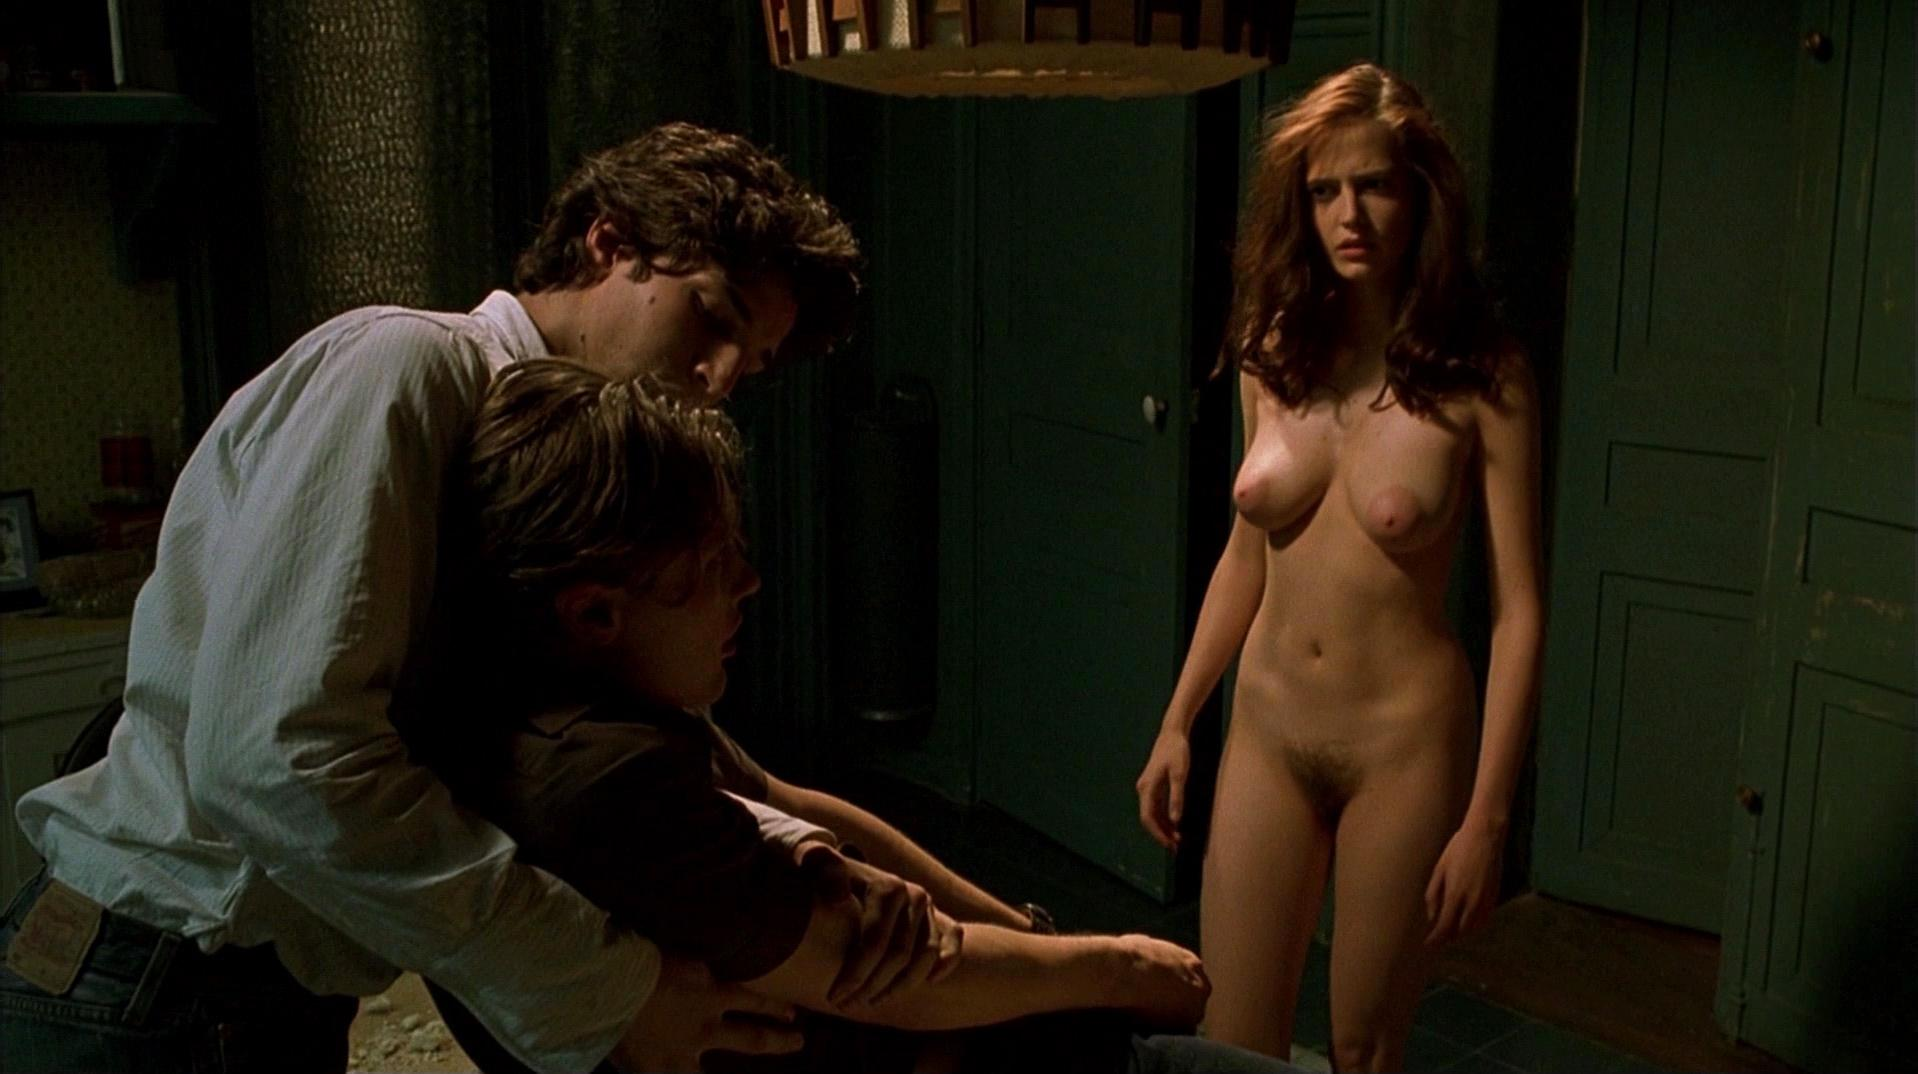 Eva Green nude - The Dreamers (2003)